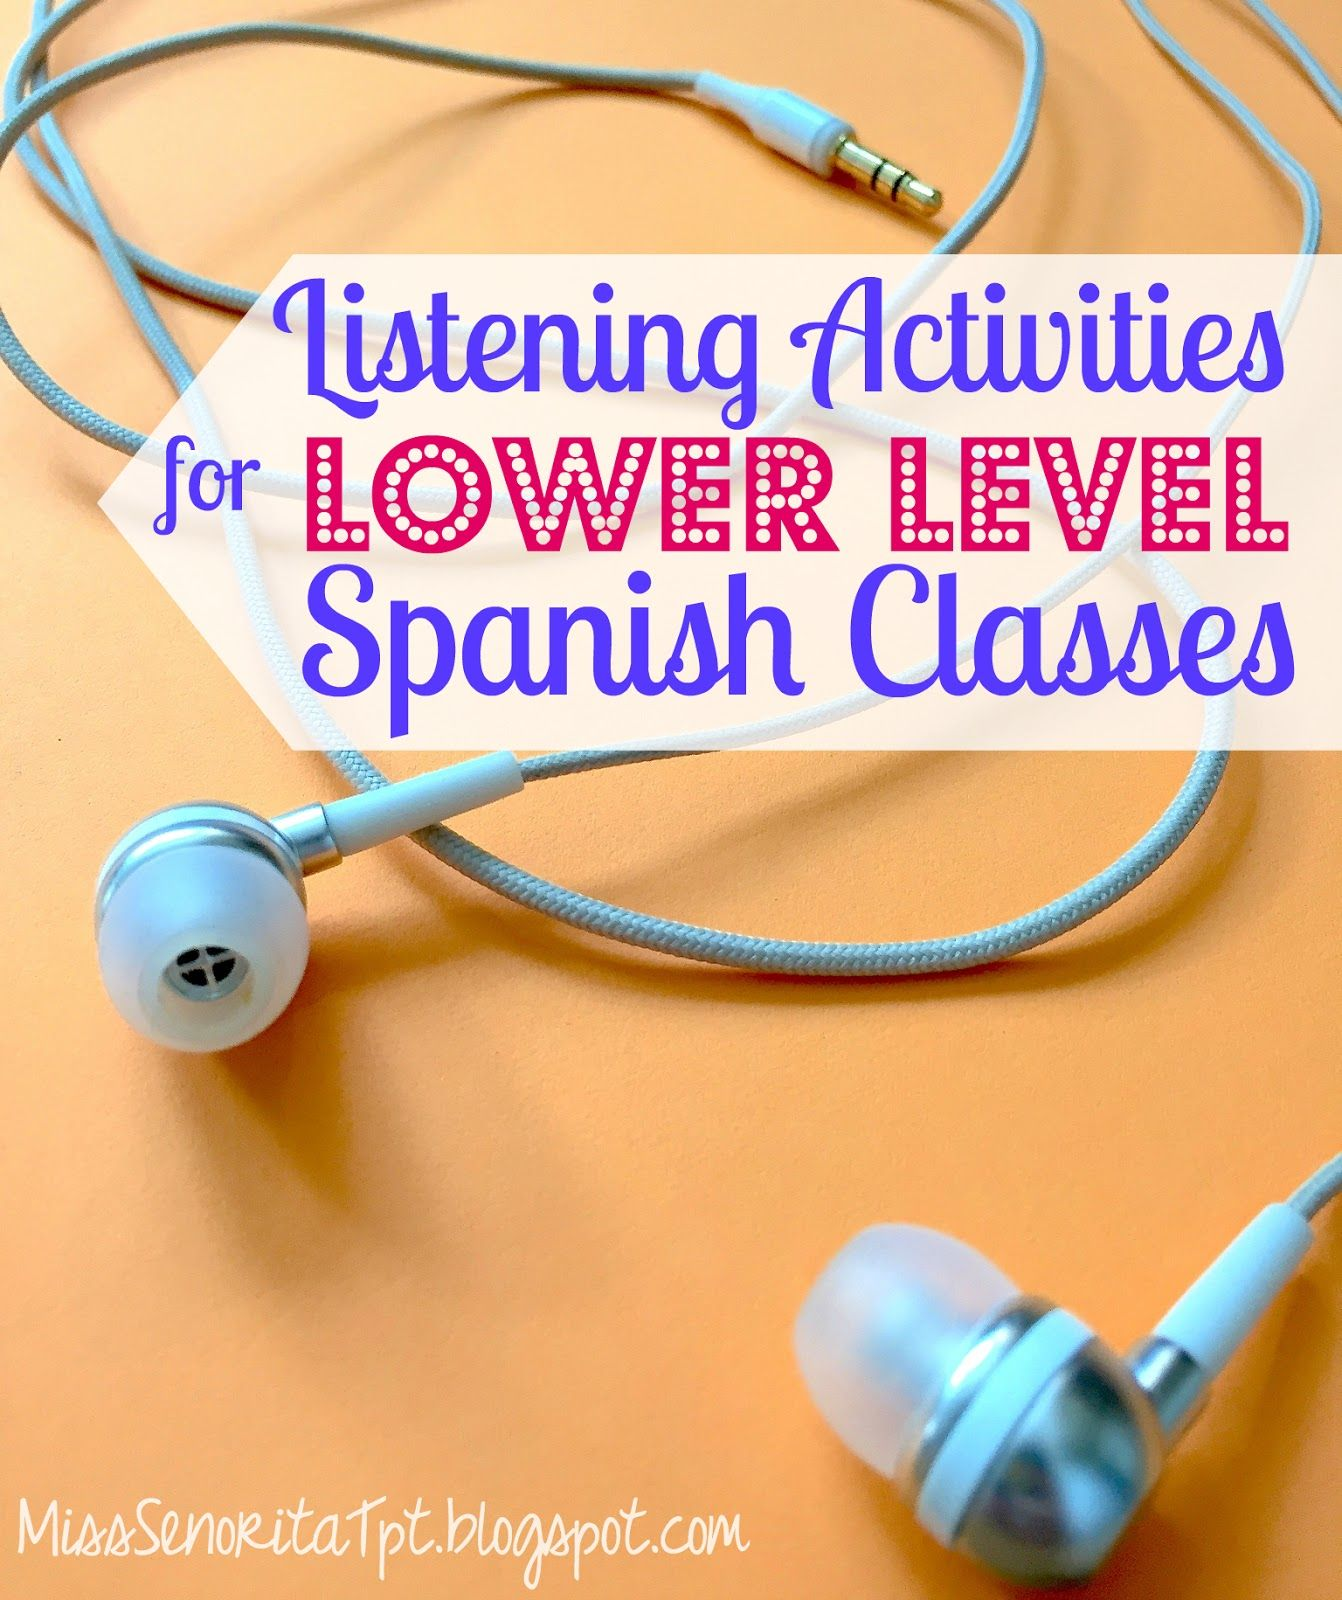 Listening Activities for Lower Level Spanish Classes